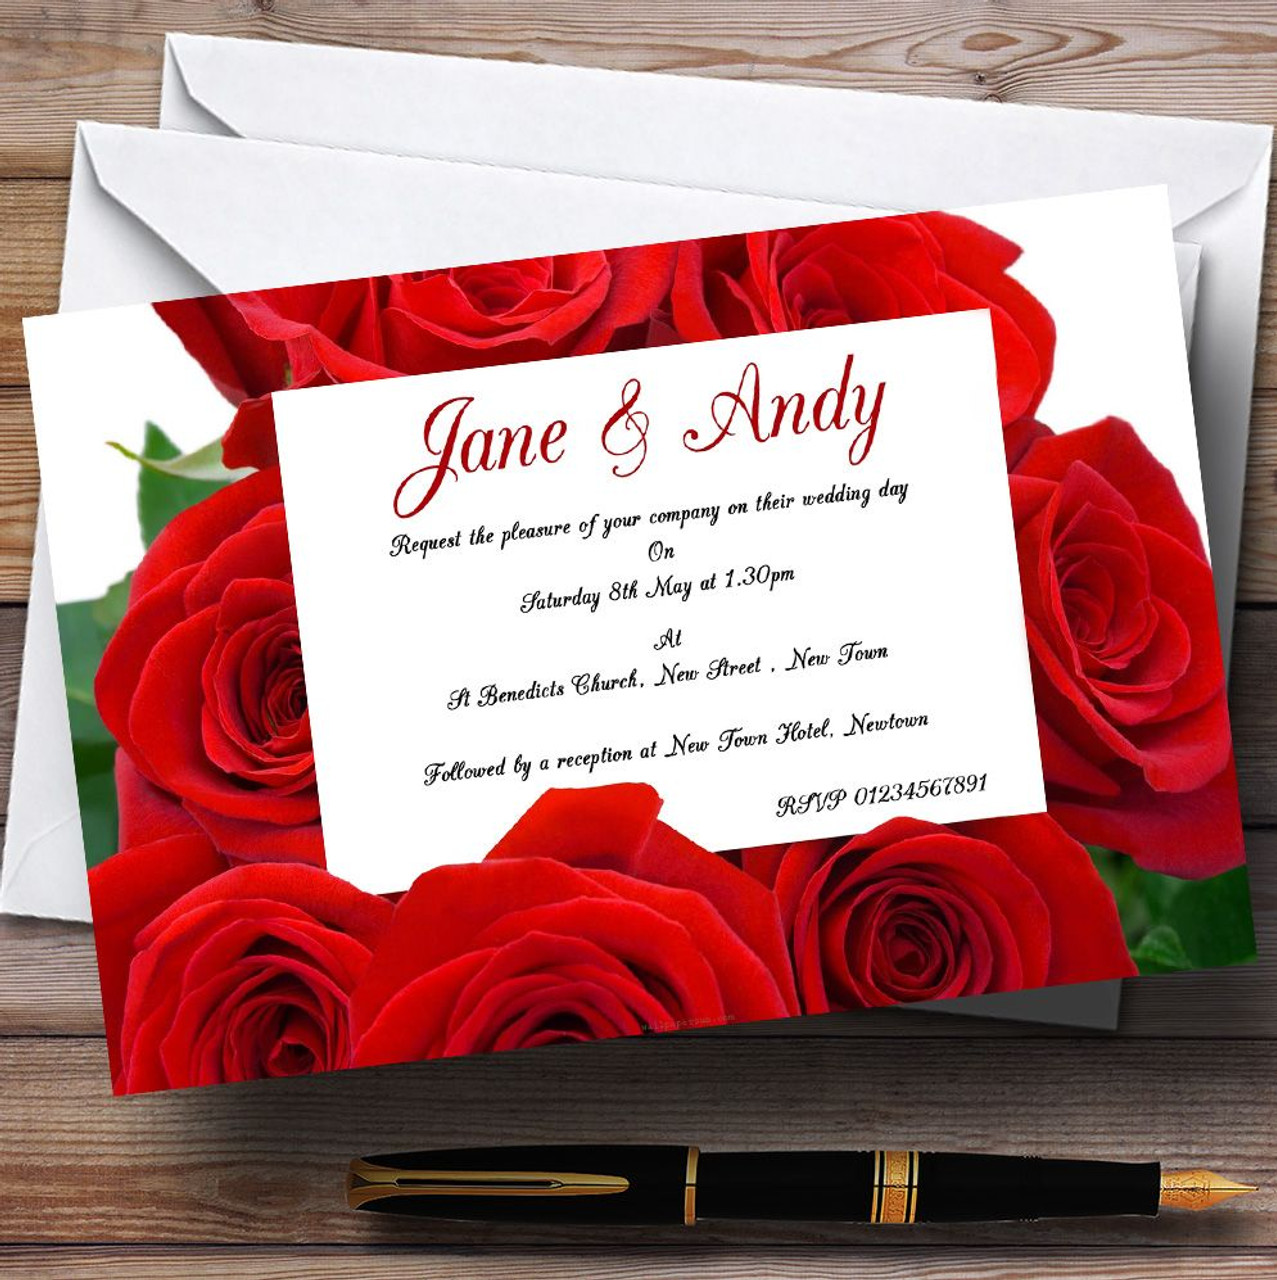 Wedding Invitations Rose: Red Rose Love Letter Personalised Wedding Invitations